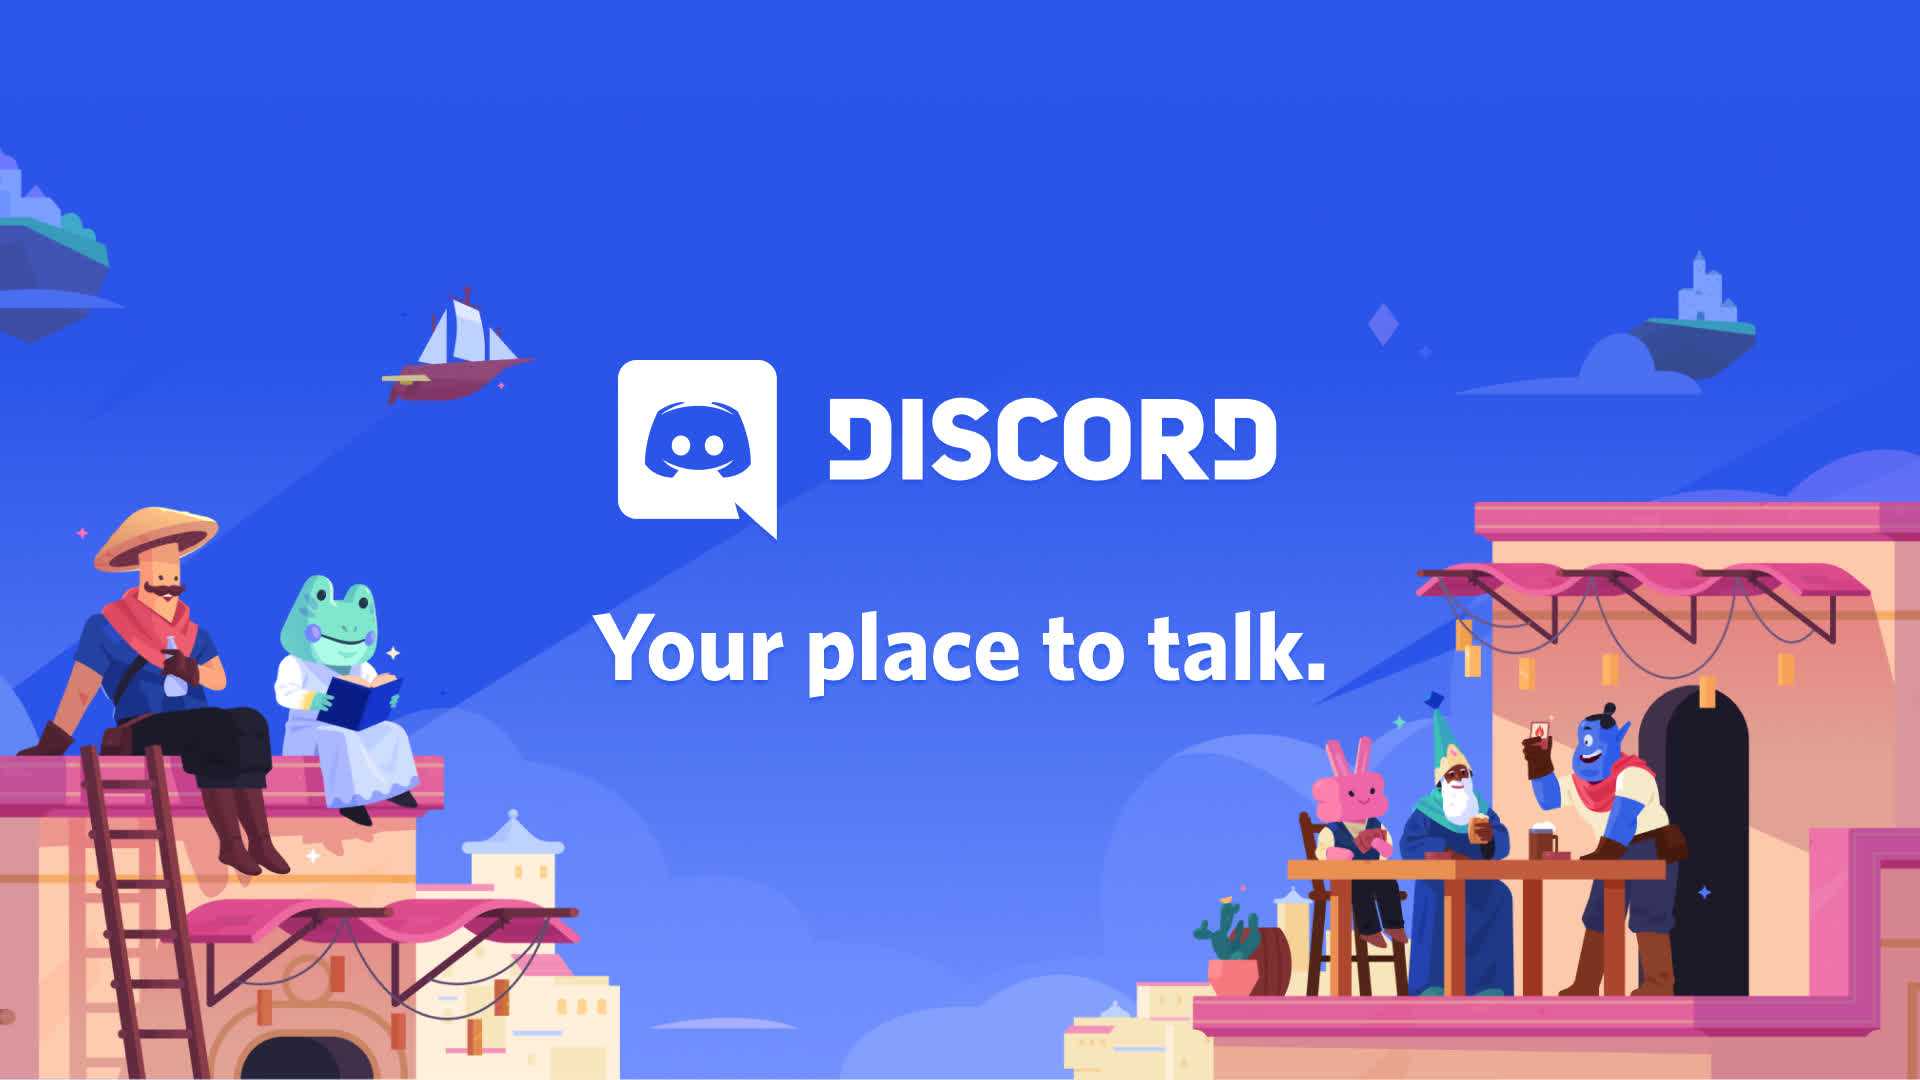 Microsoft reportedly in talks to acquire Discord for over $10 billion